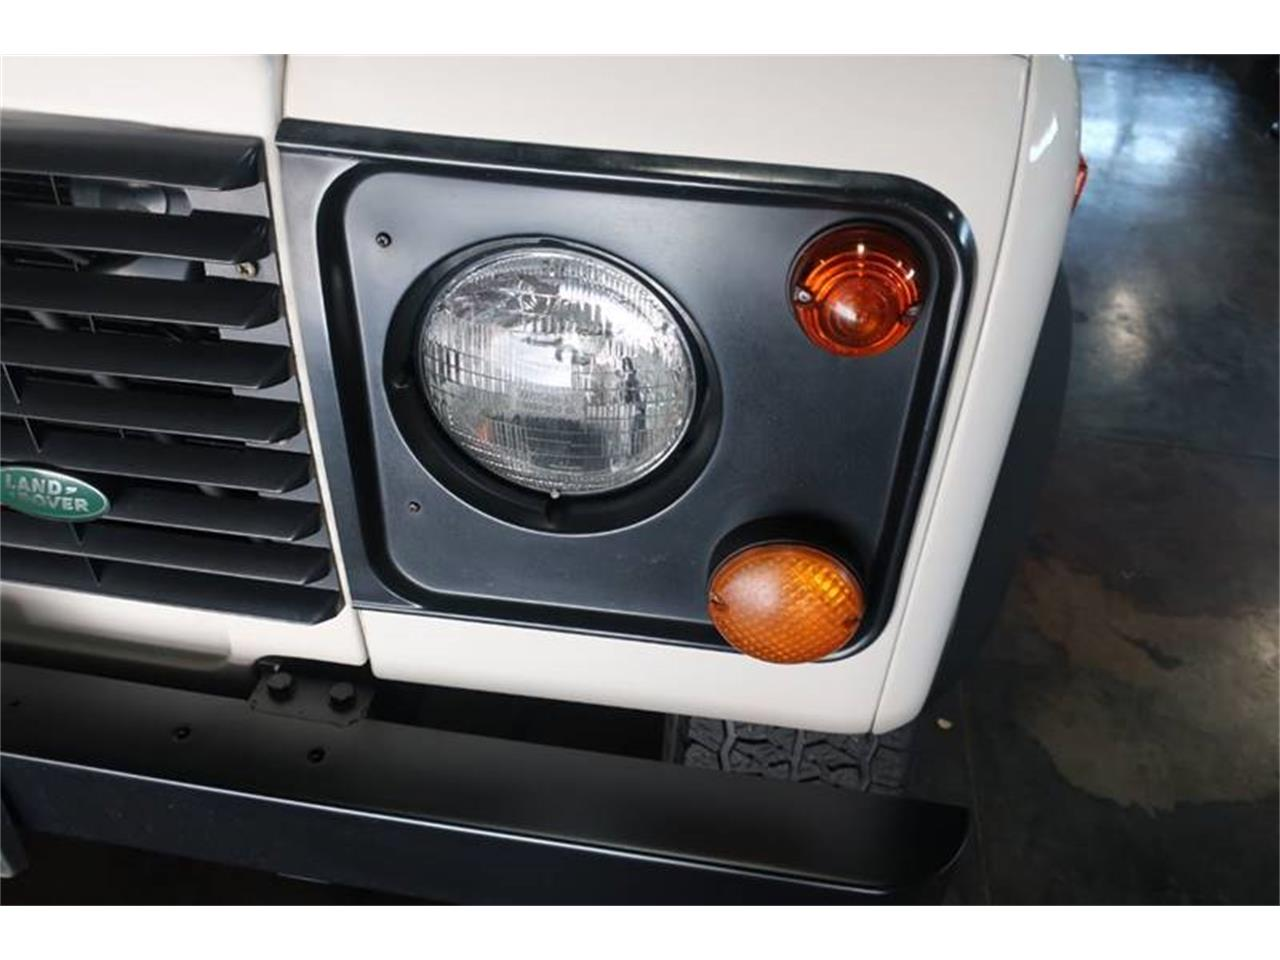 1995 Land Rover Defender for sale in Hailey, ID – photo 65